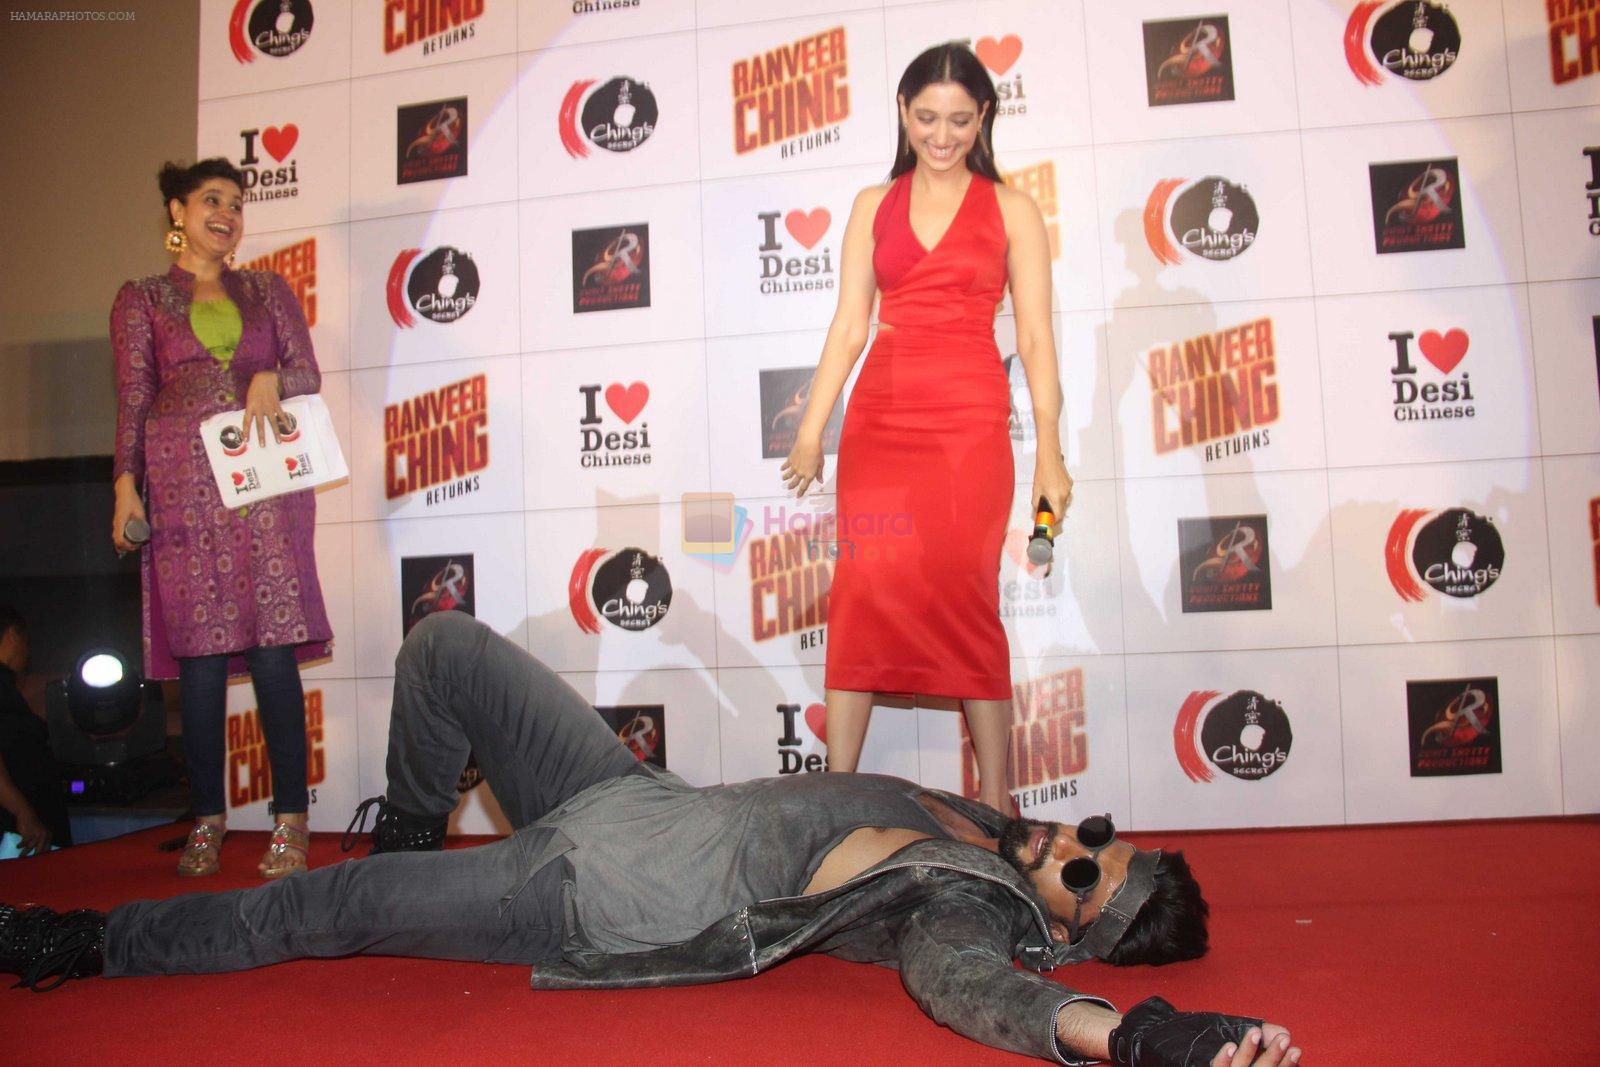 Ranveer Singh, Tamannaah Bhatia promote Ranveer Ching Returns on 19th Aug 2016